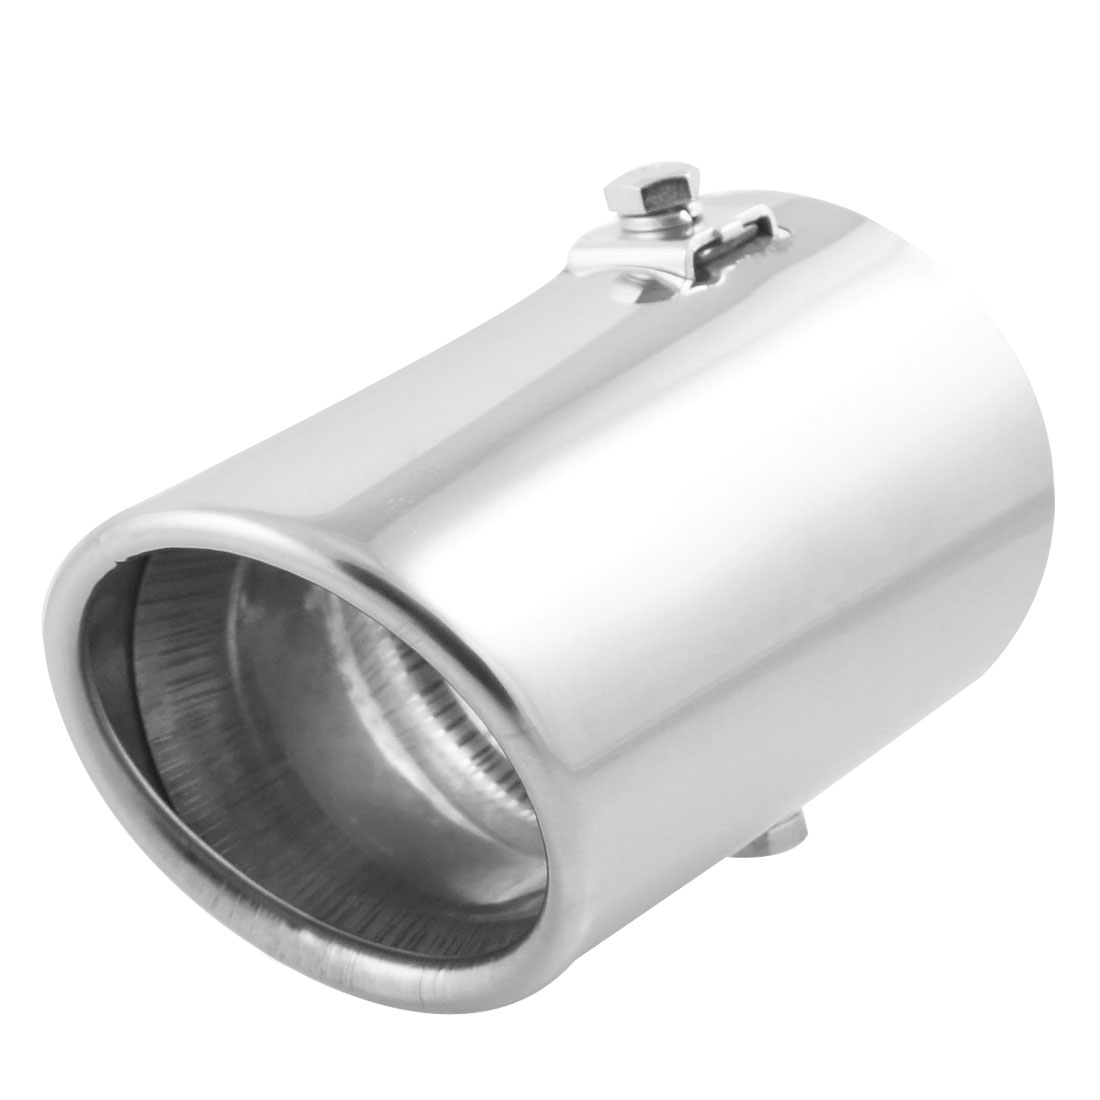 Silver Tone A21 10.5cm Long Outlet Muffler Exhaust Tip for Citroen C2